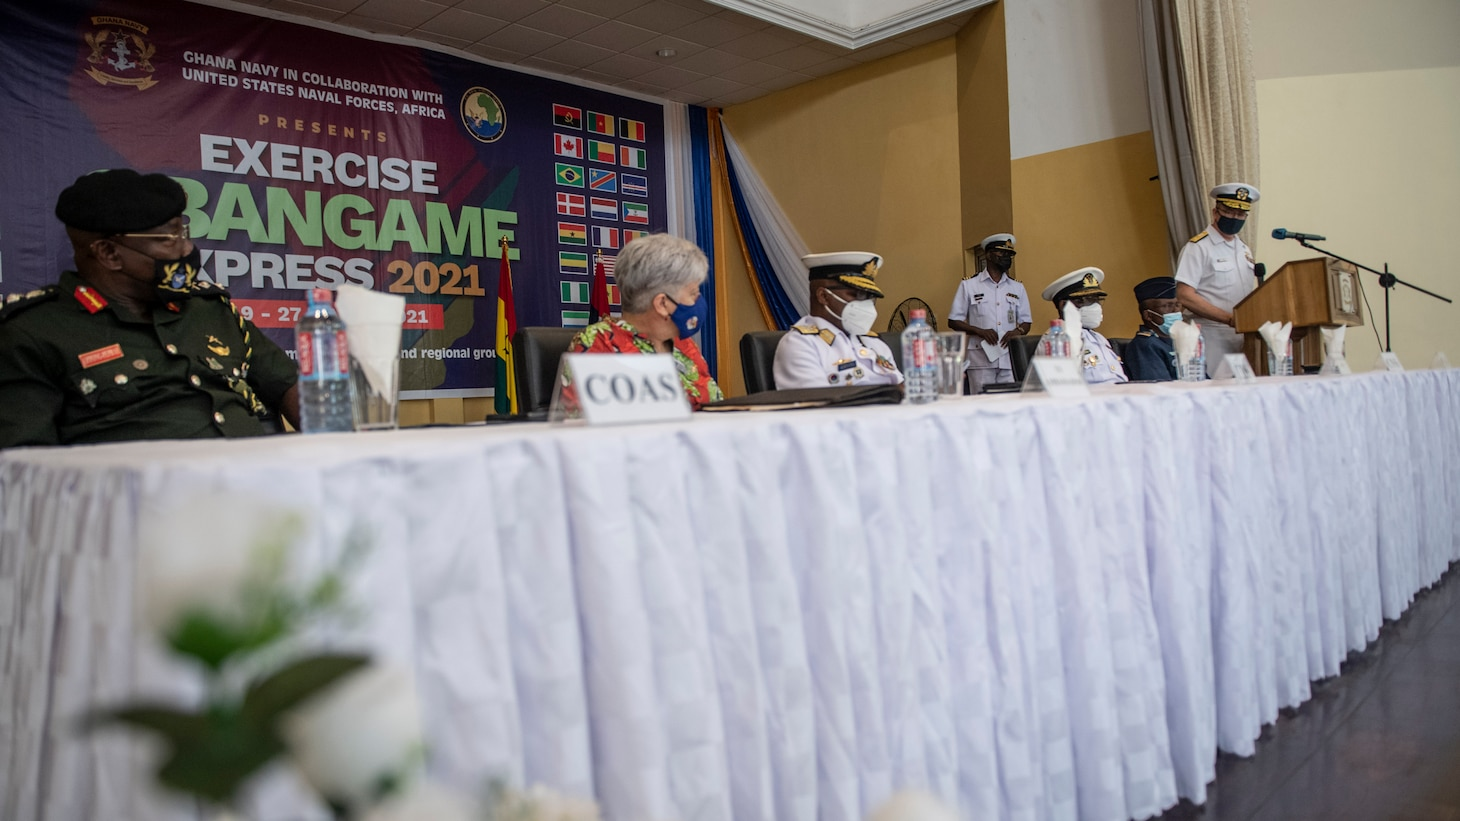 Rear Adm. Jeffrey S. Spivey, director, maritime partnership program, U.S. Naval Forces Europe, Africa, Sixth Fleet, delivers remarks during the closing ceremony of Exercise Obangame Express in Accra, Ghana, March 27, 2021.